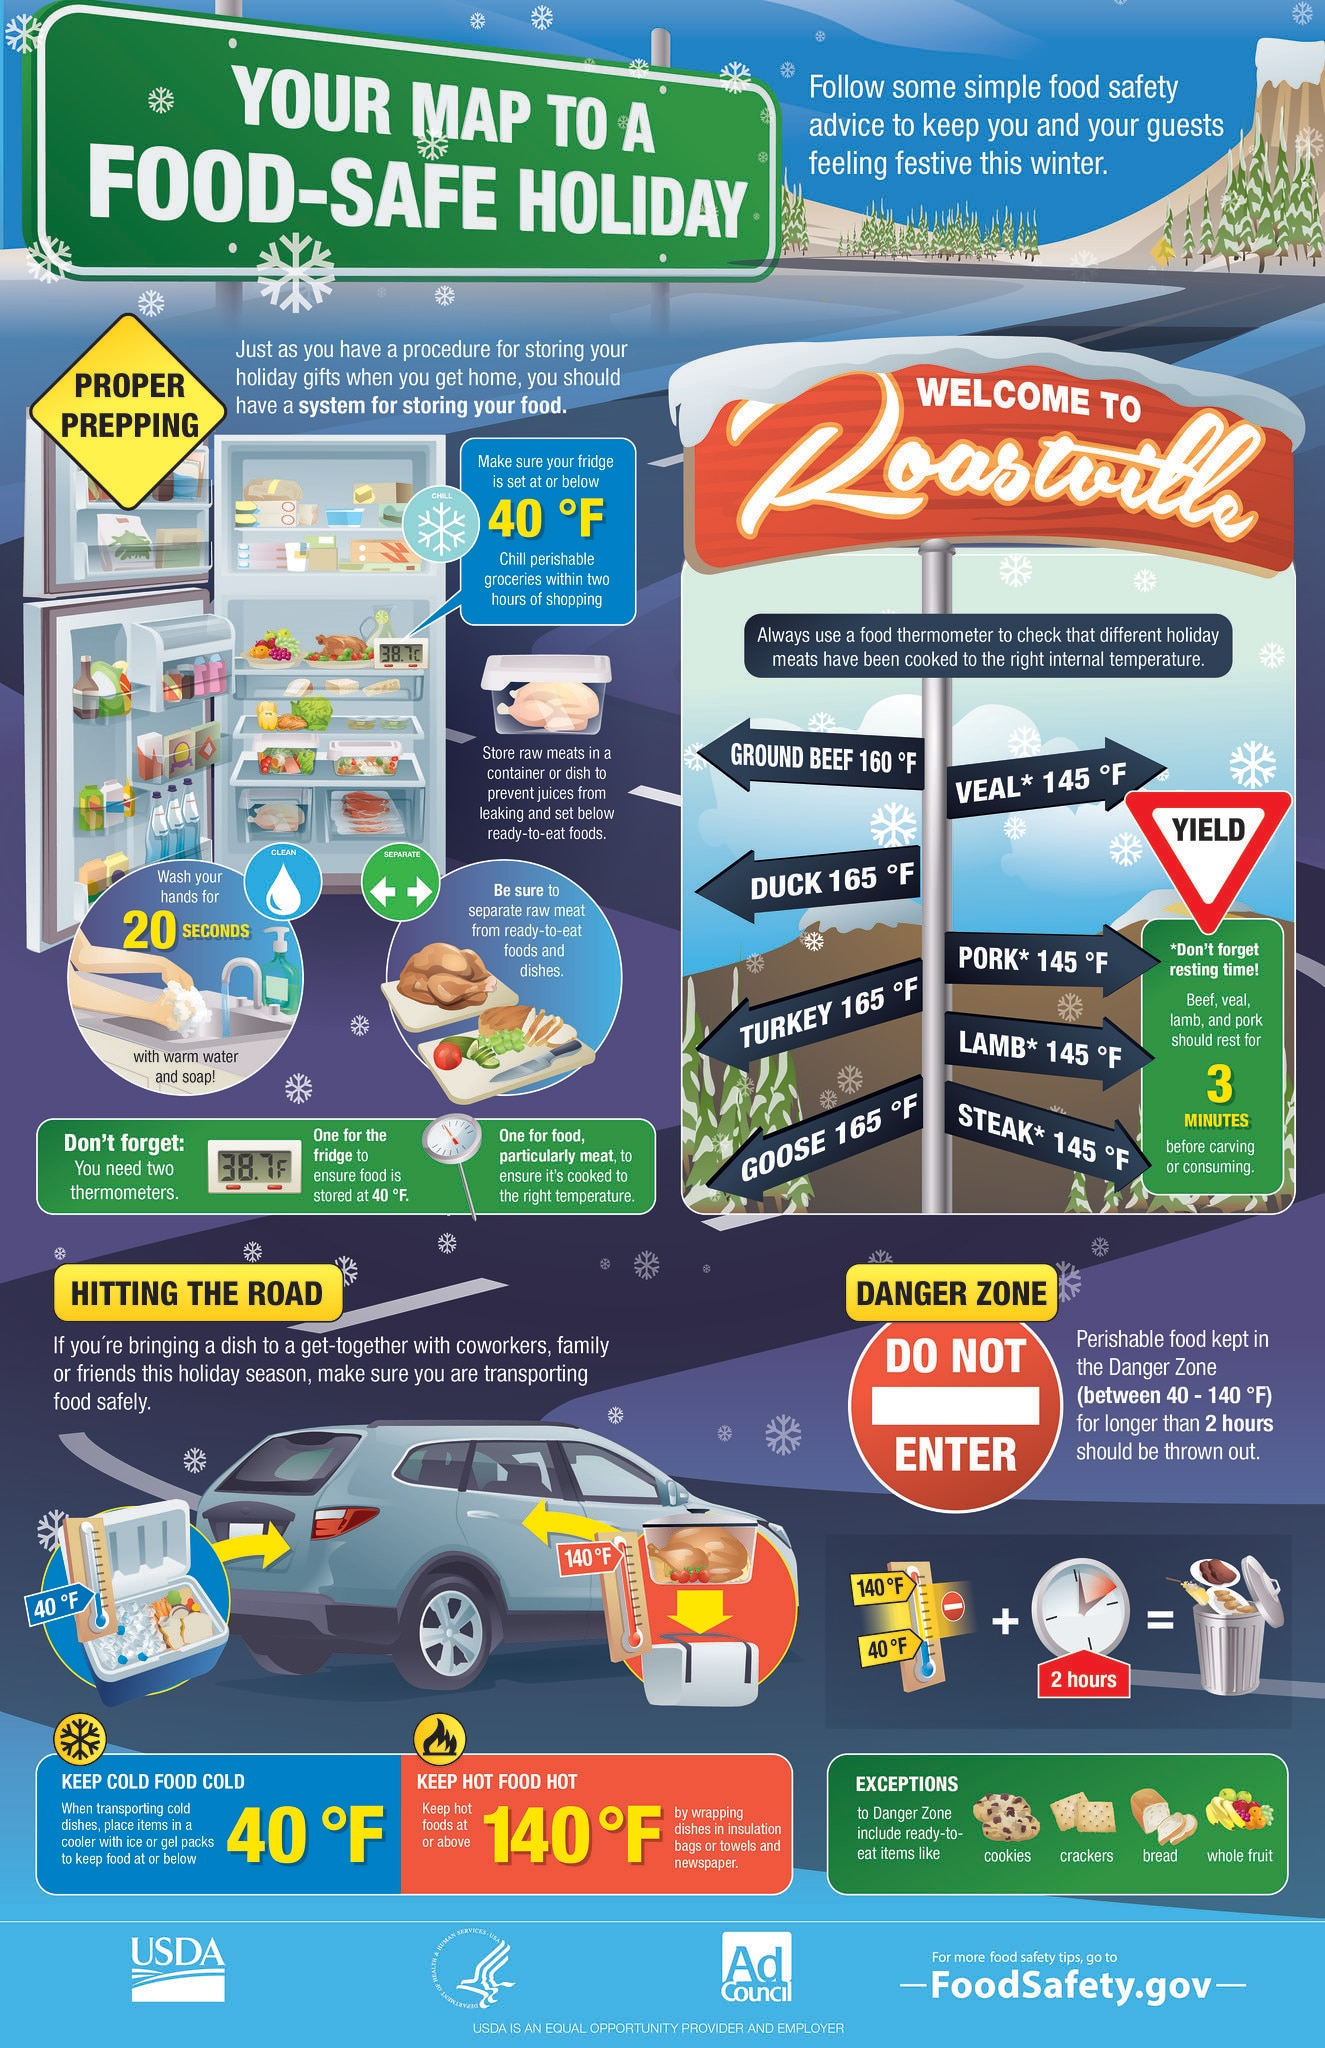 Infographic from FoodSafety.gov with a map for food-safe holidays and tips for prepping and traveling with food.